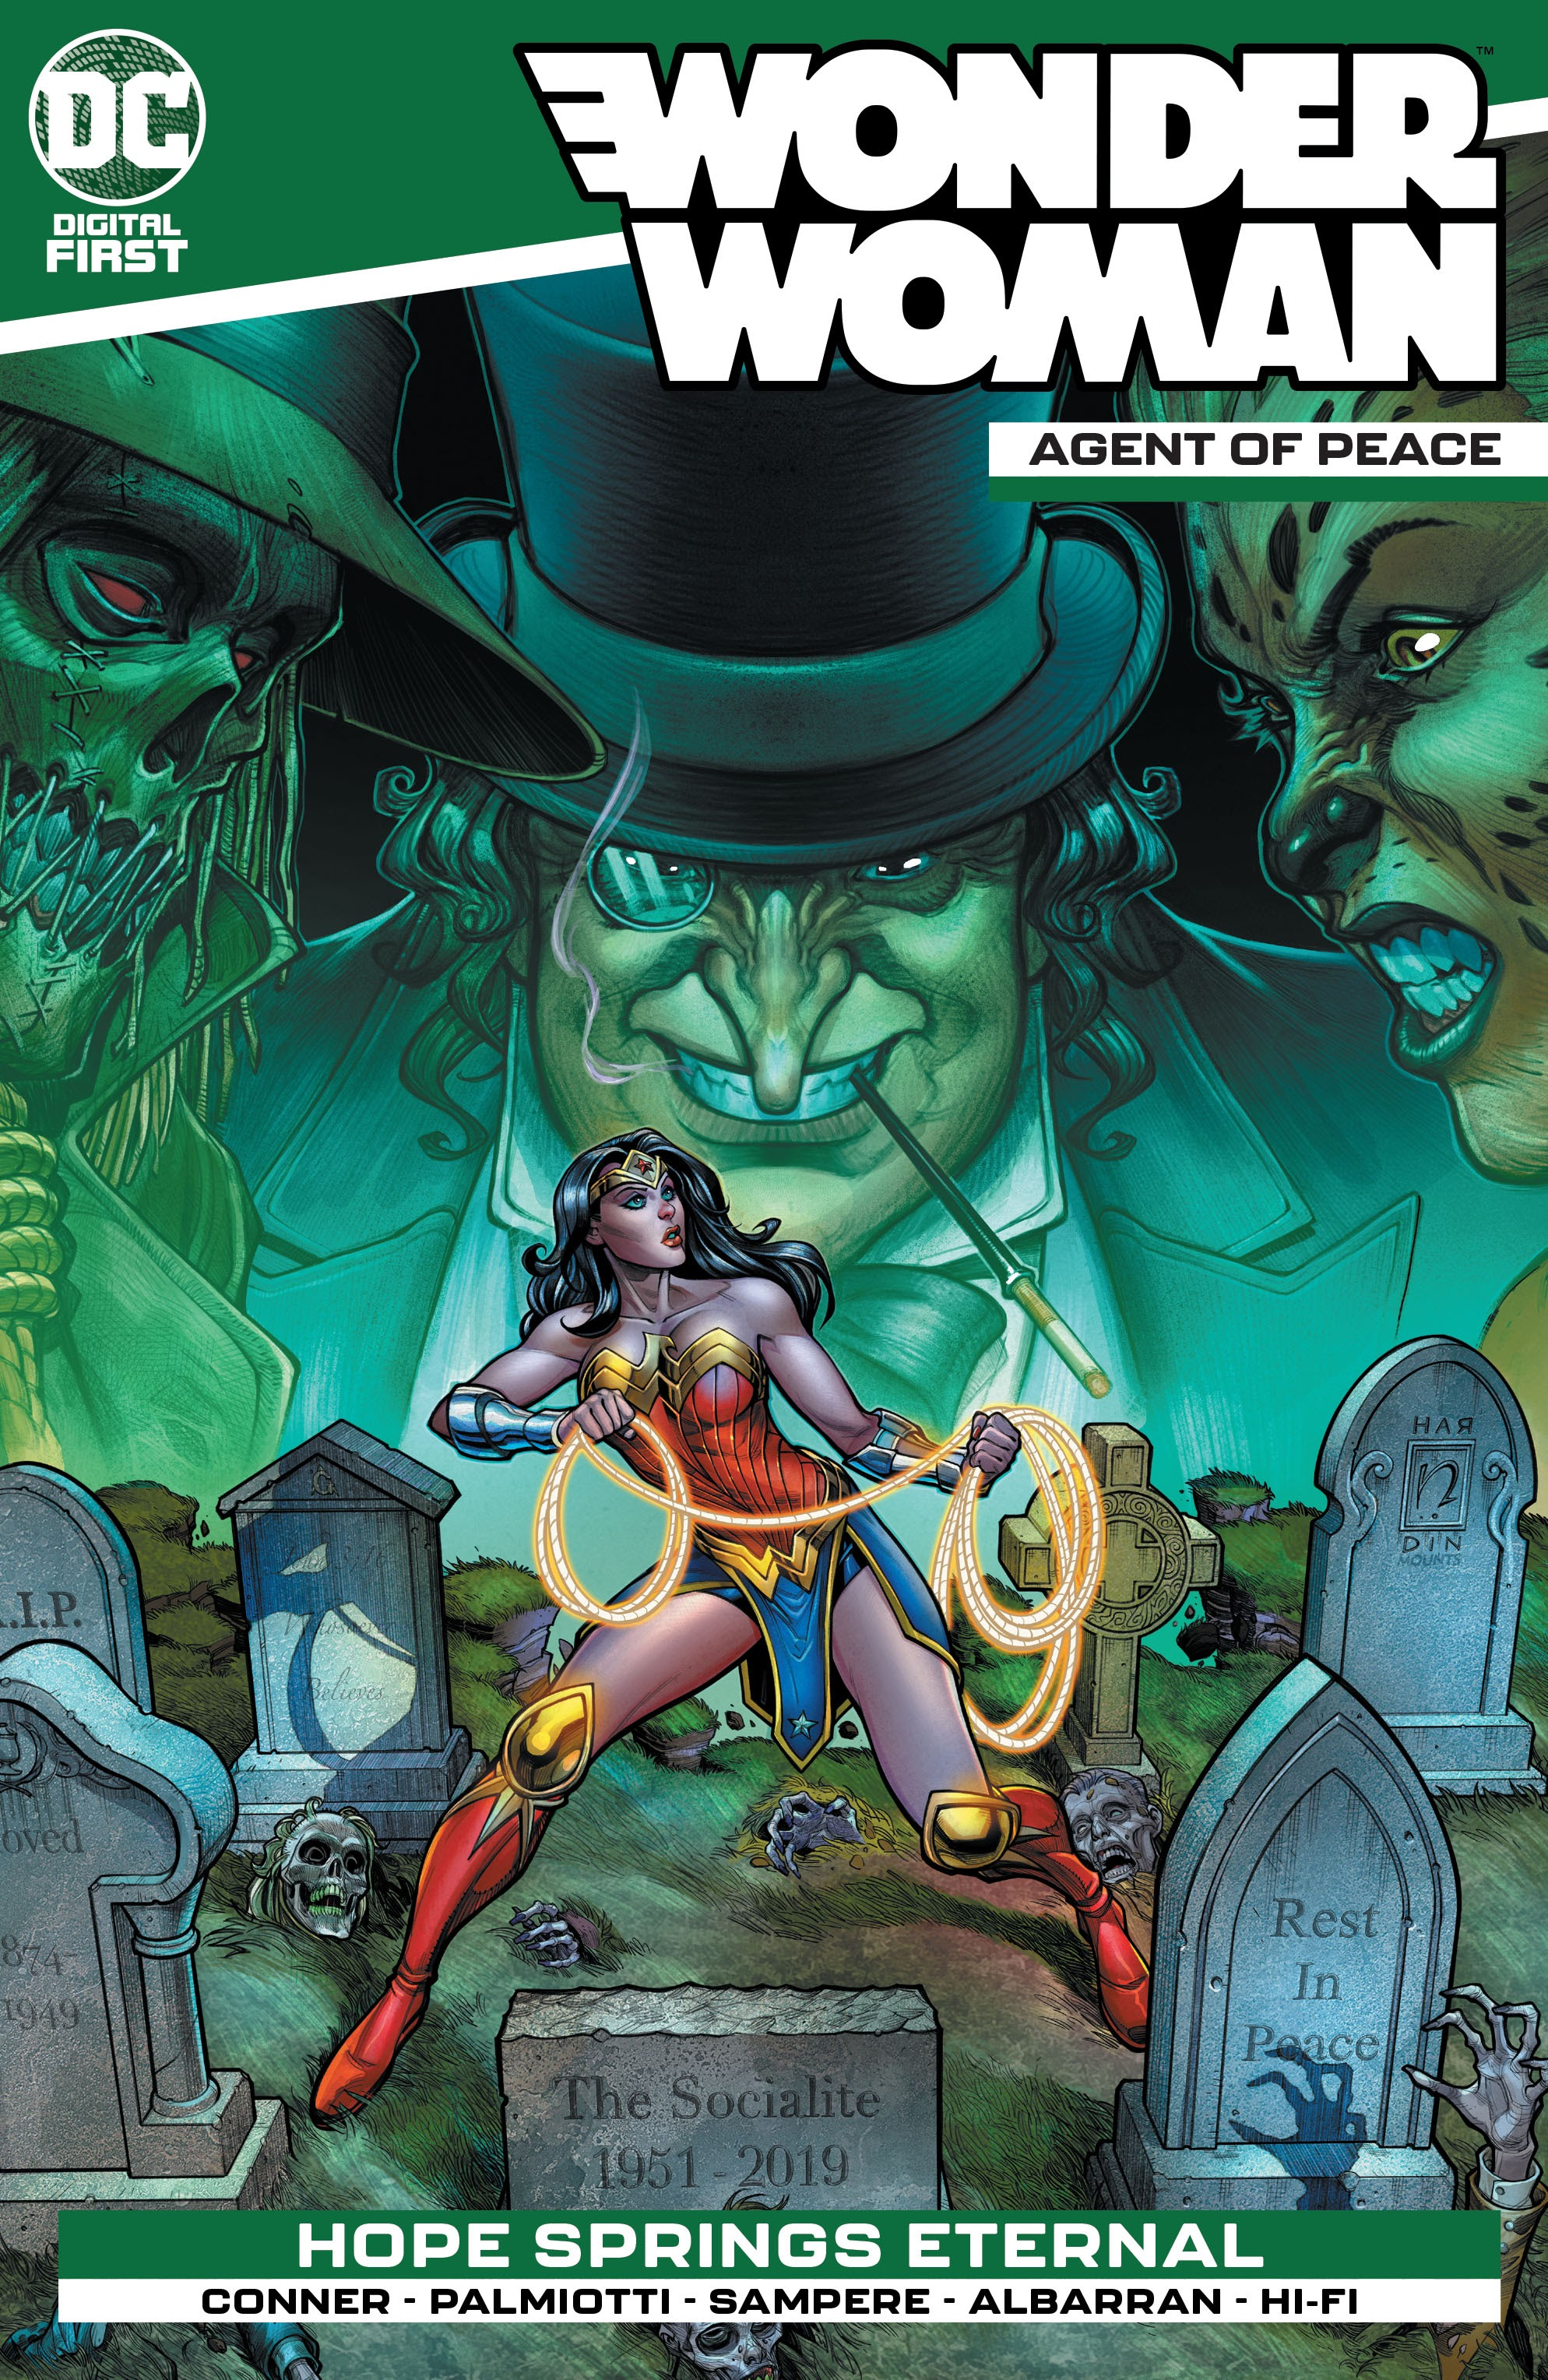 Wonder Woman: Agent of Peace Vol 1 4 (Digital)